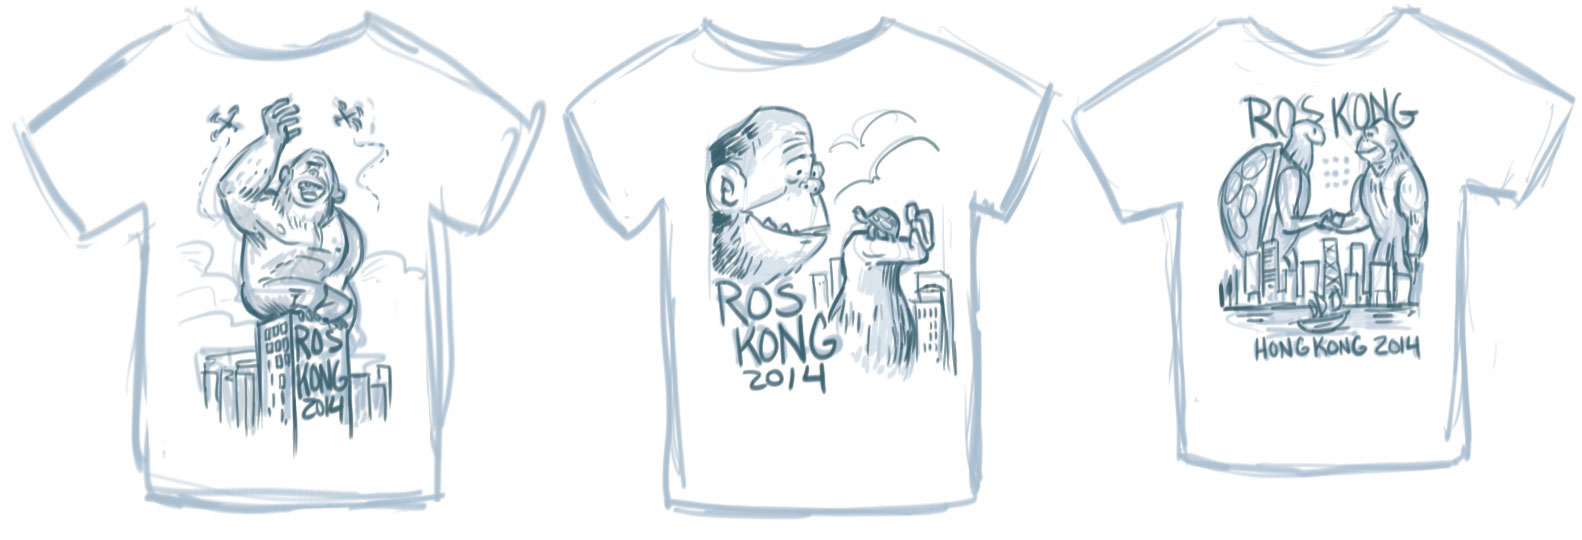 Initial Concepts for ROS Kong shirt